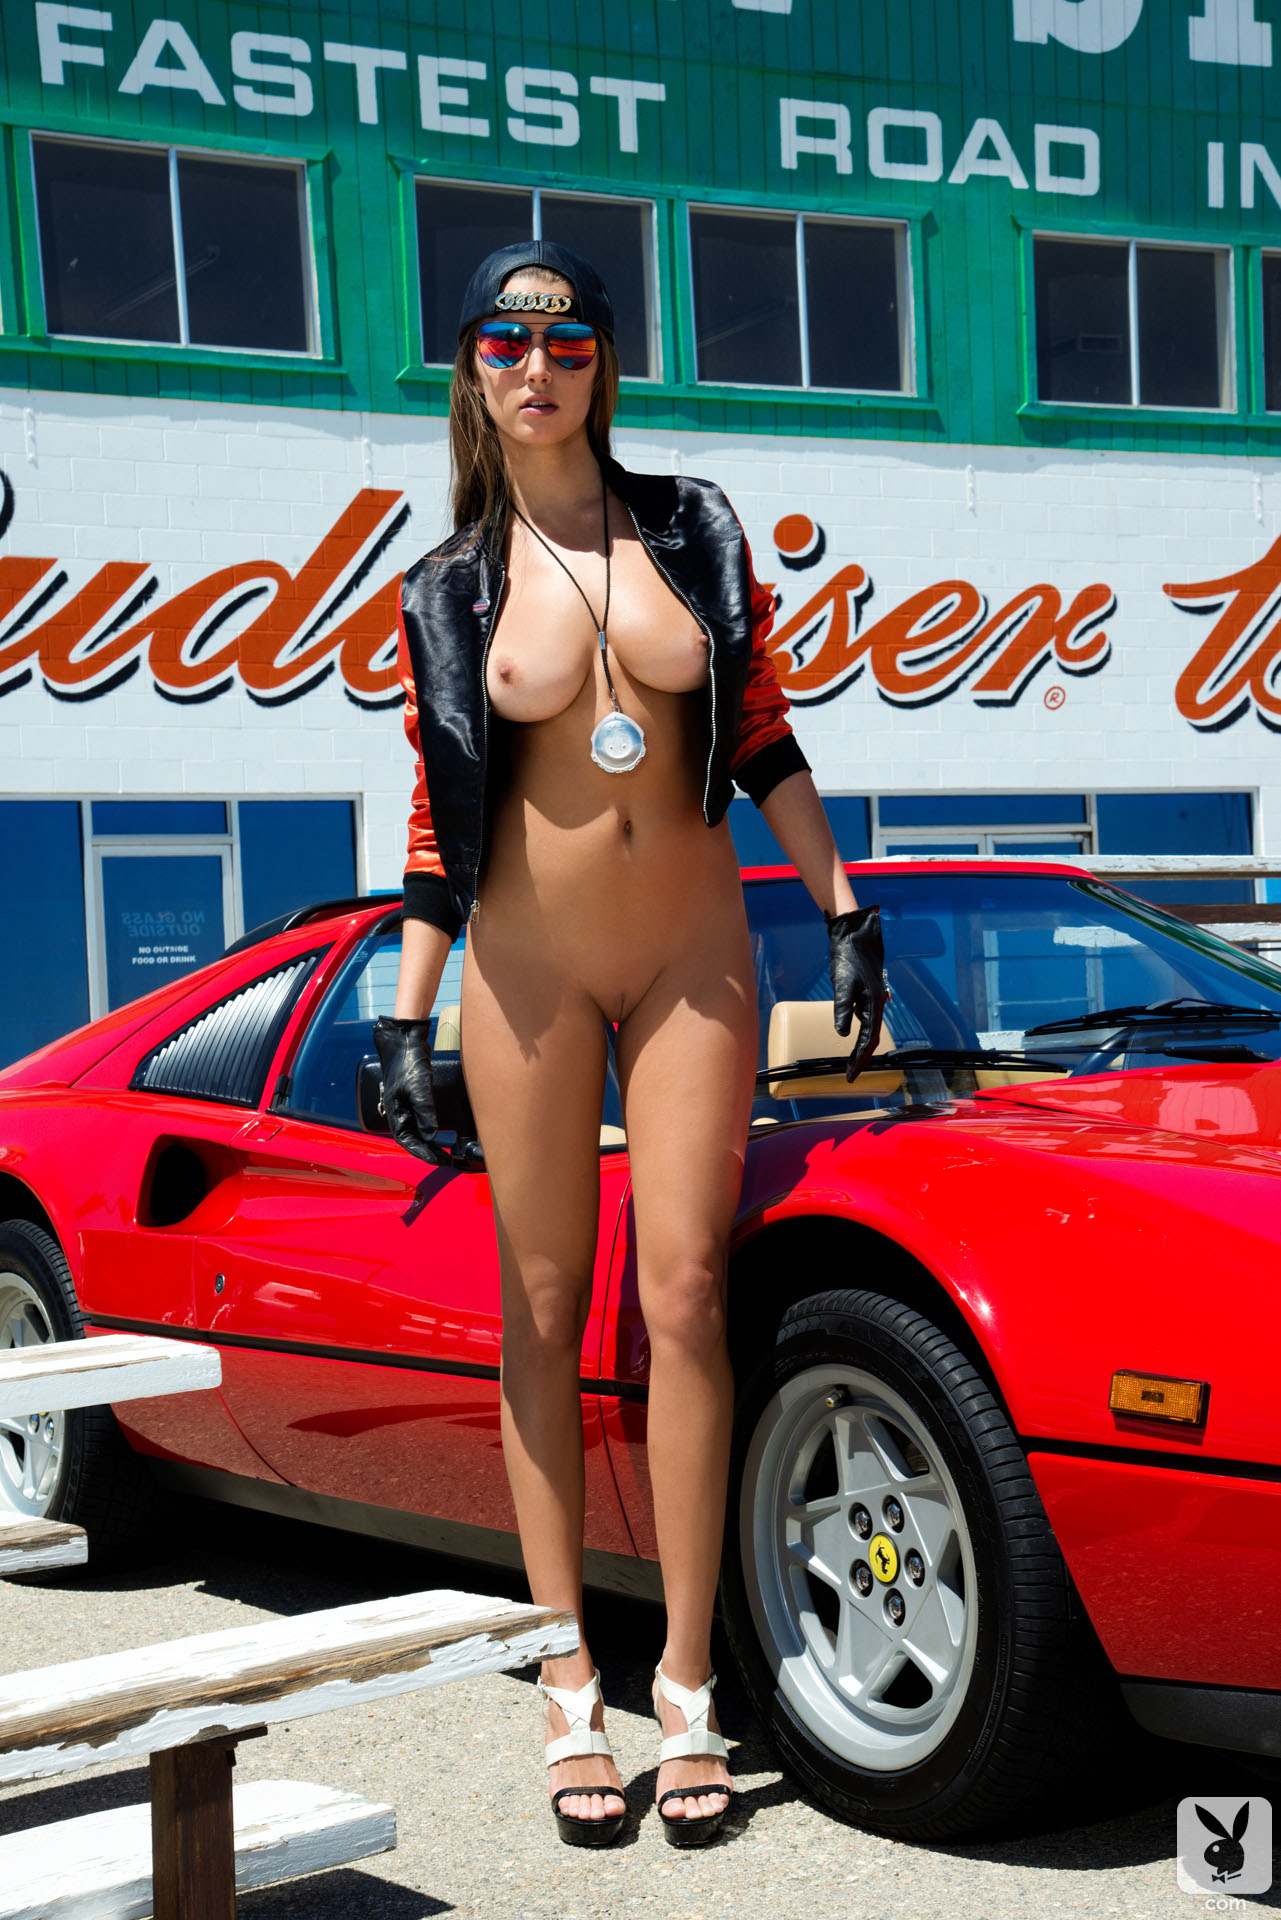 Nude fast and furious girls, nude yard work pics